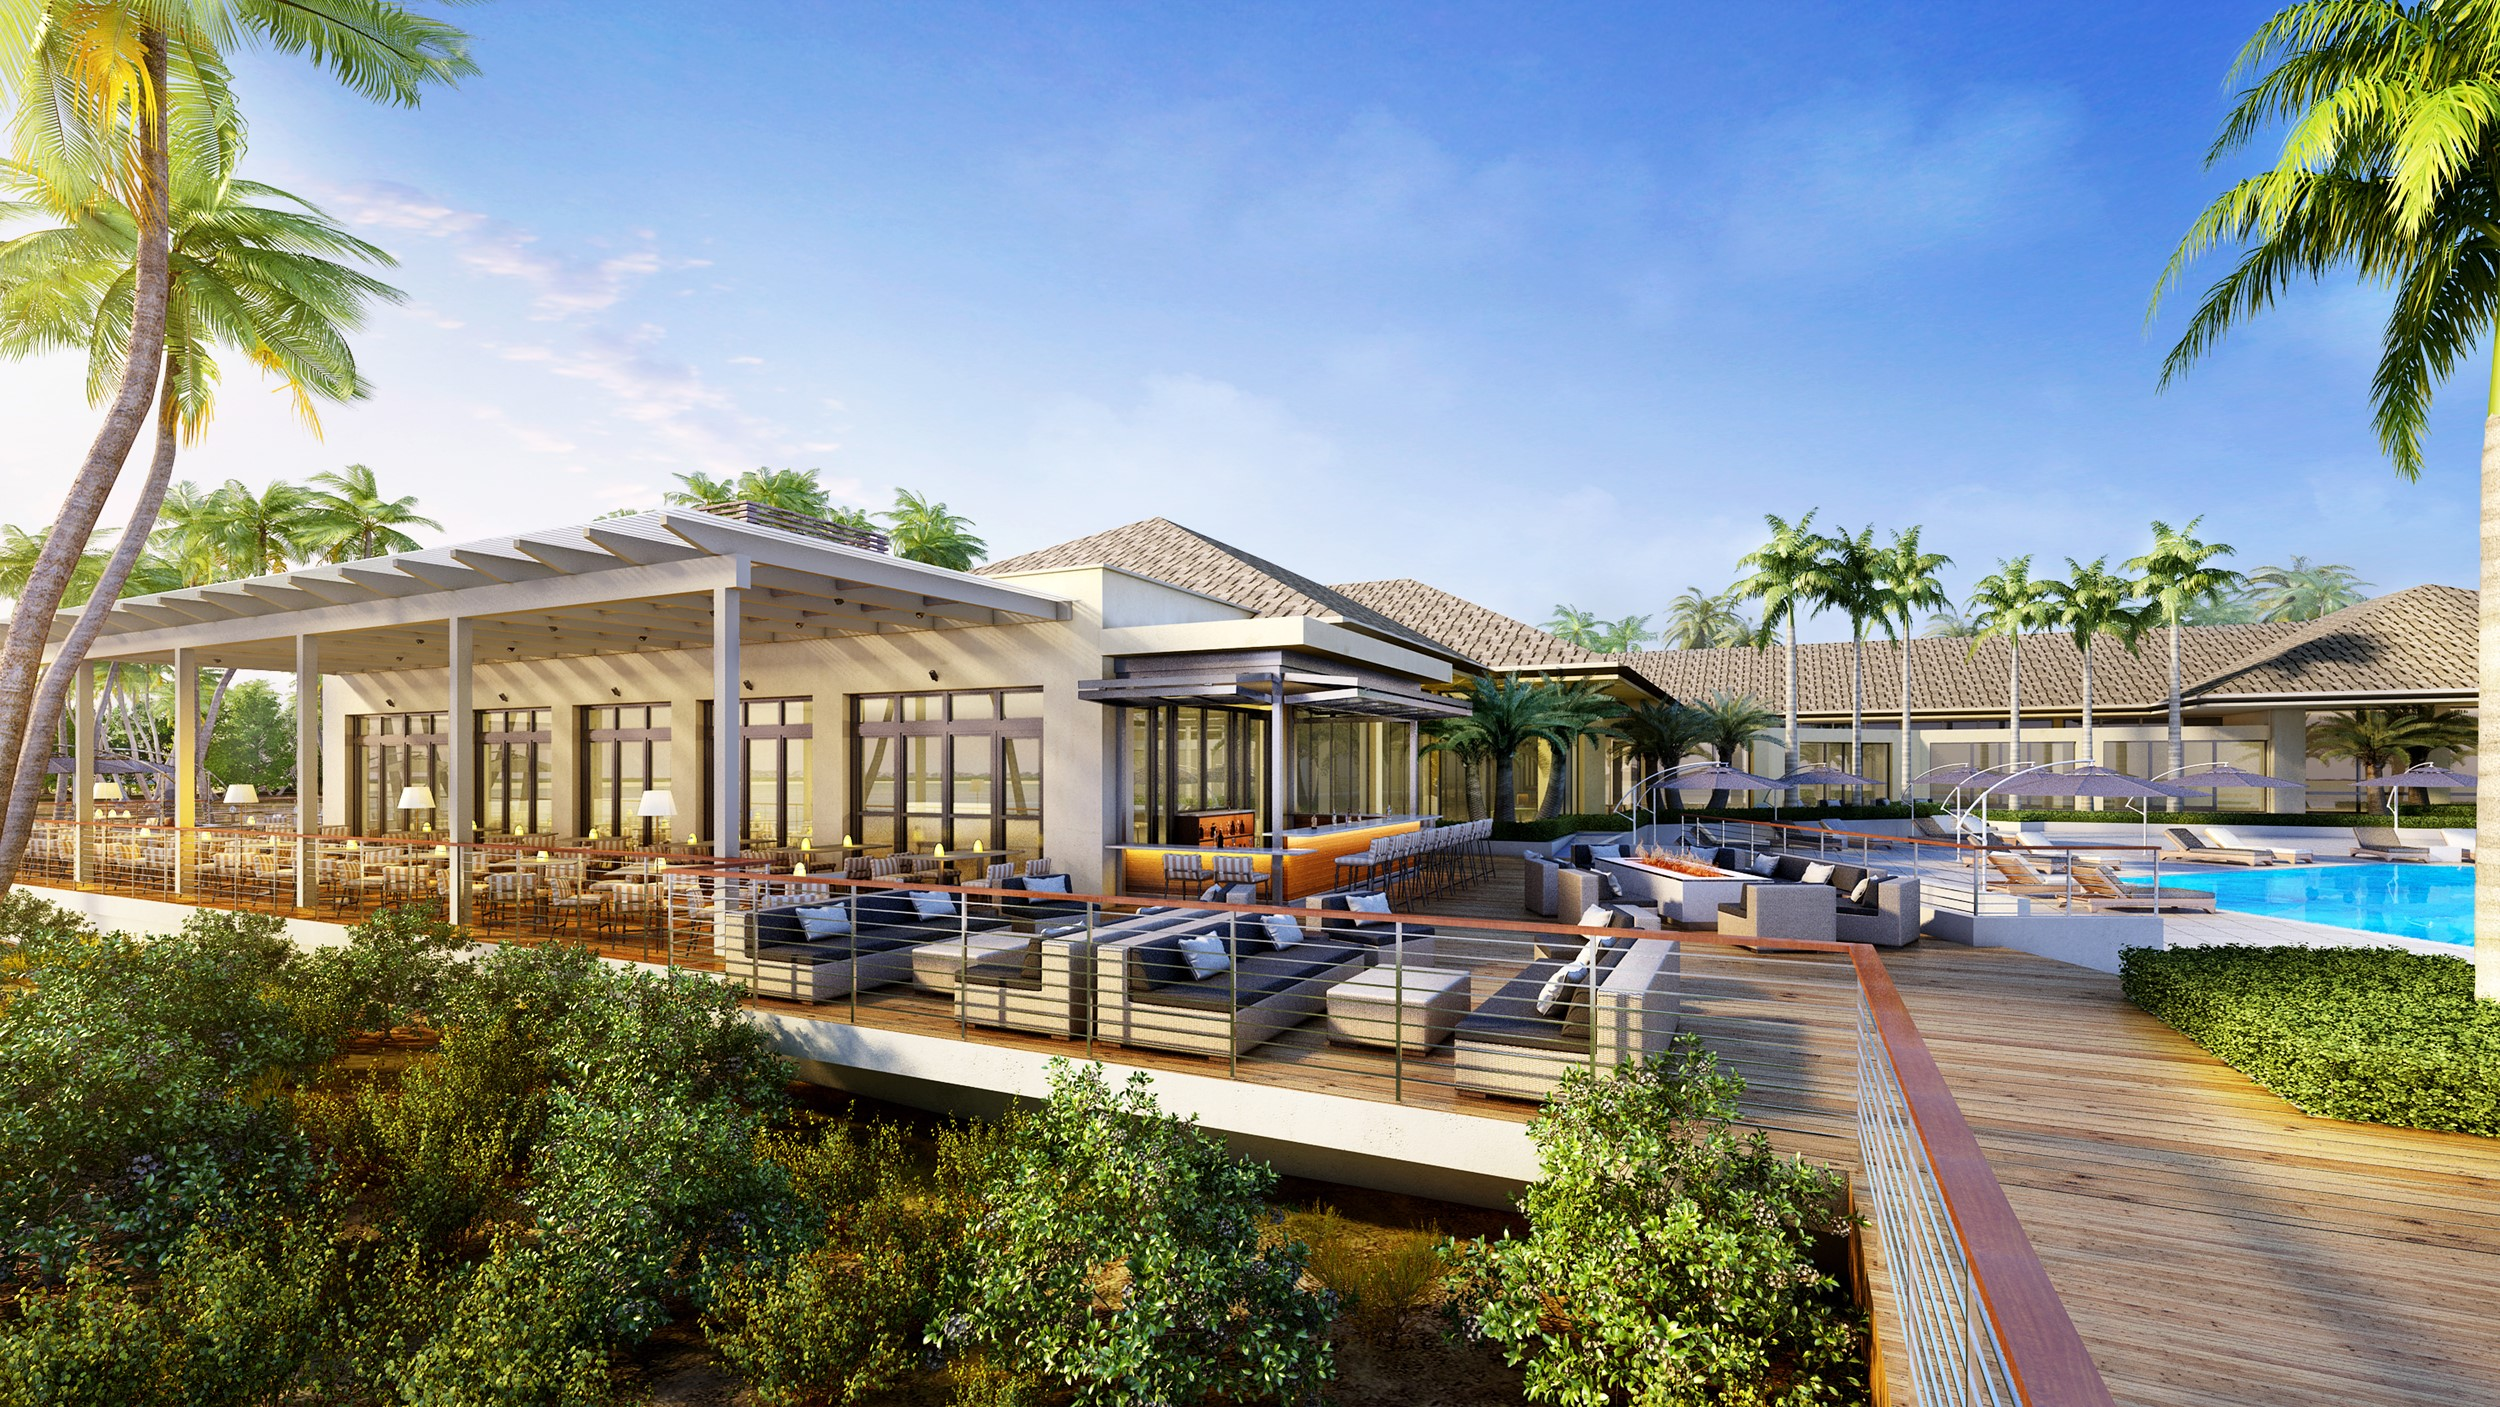 Hilton marco island beach resort and spa debuts in january for Best us spa resorts